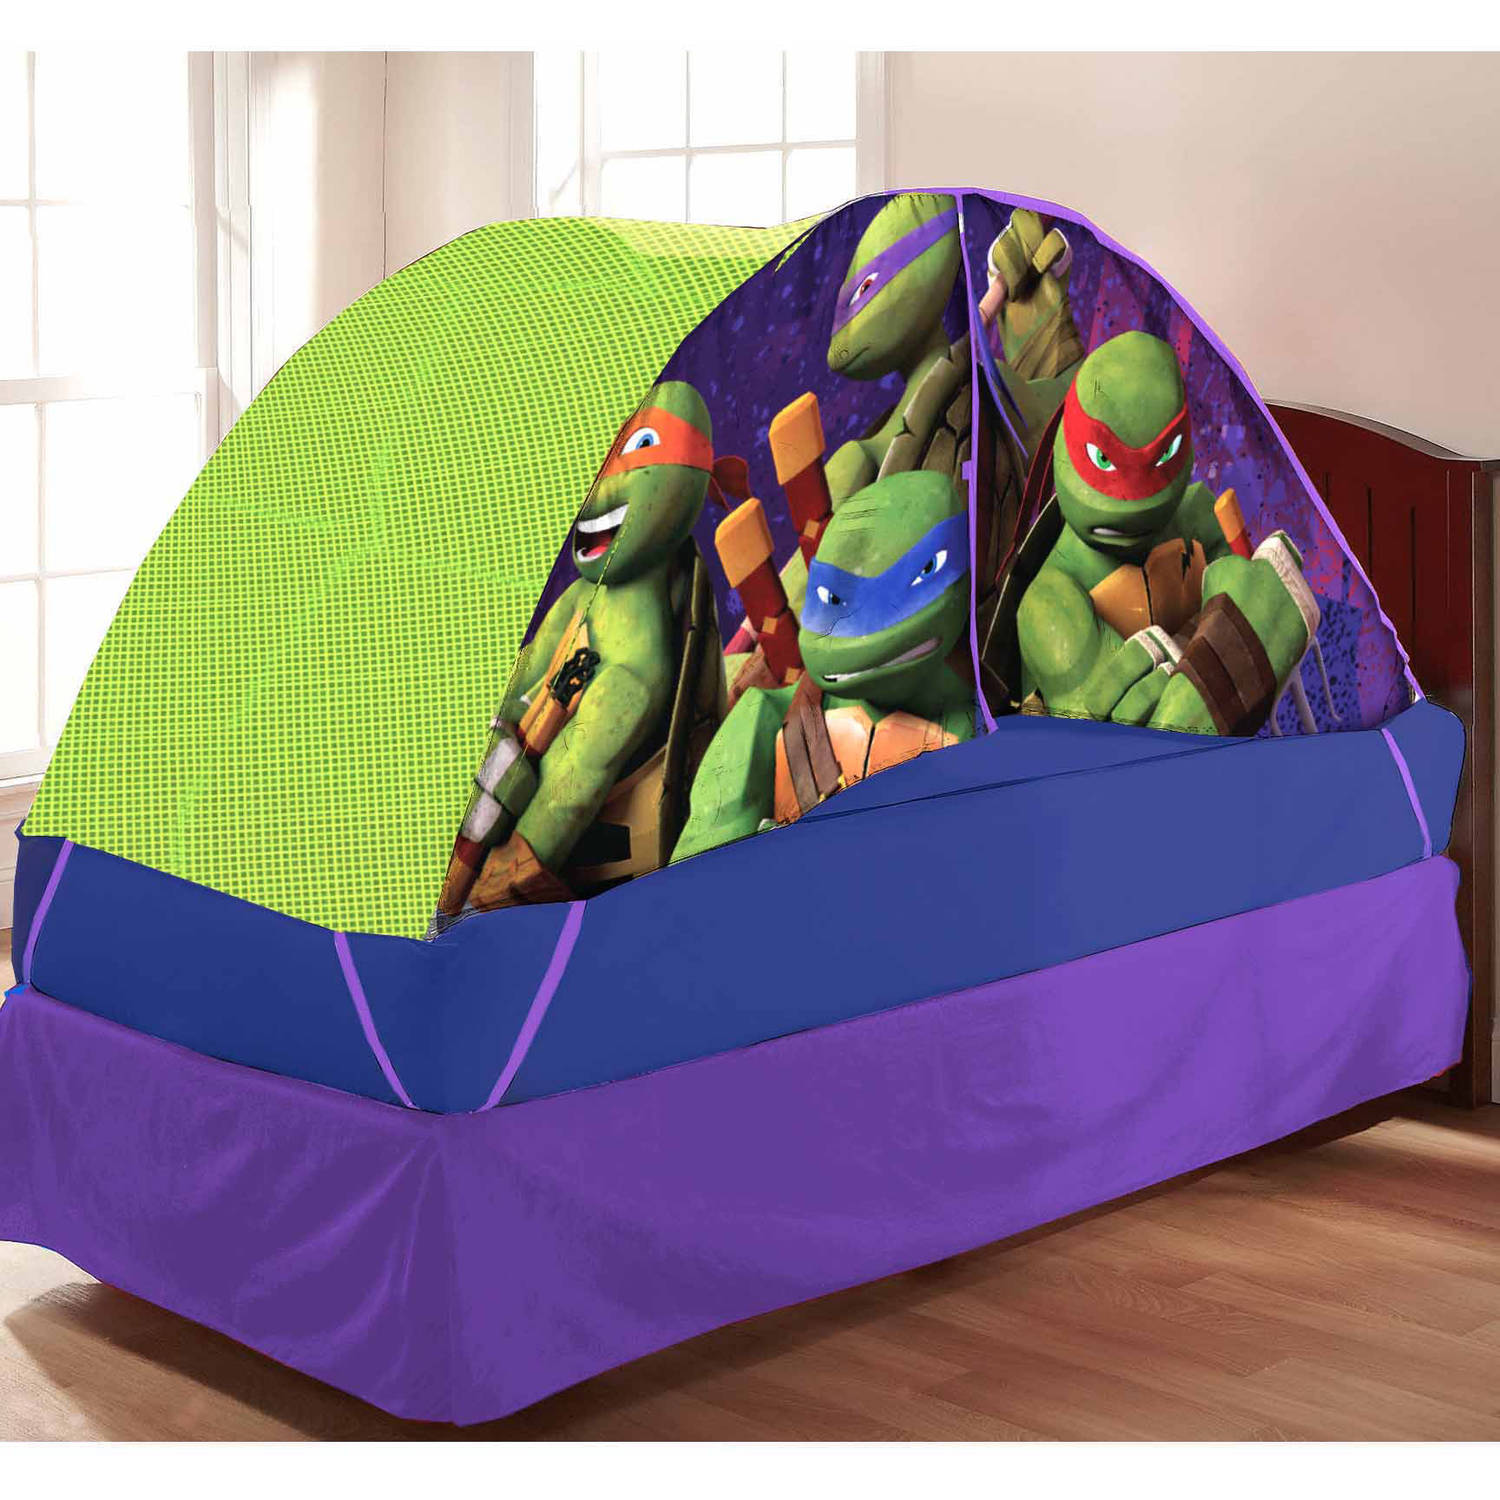 Teenage Mutant Ninja Turtle Bed Tent with Pushlight ...